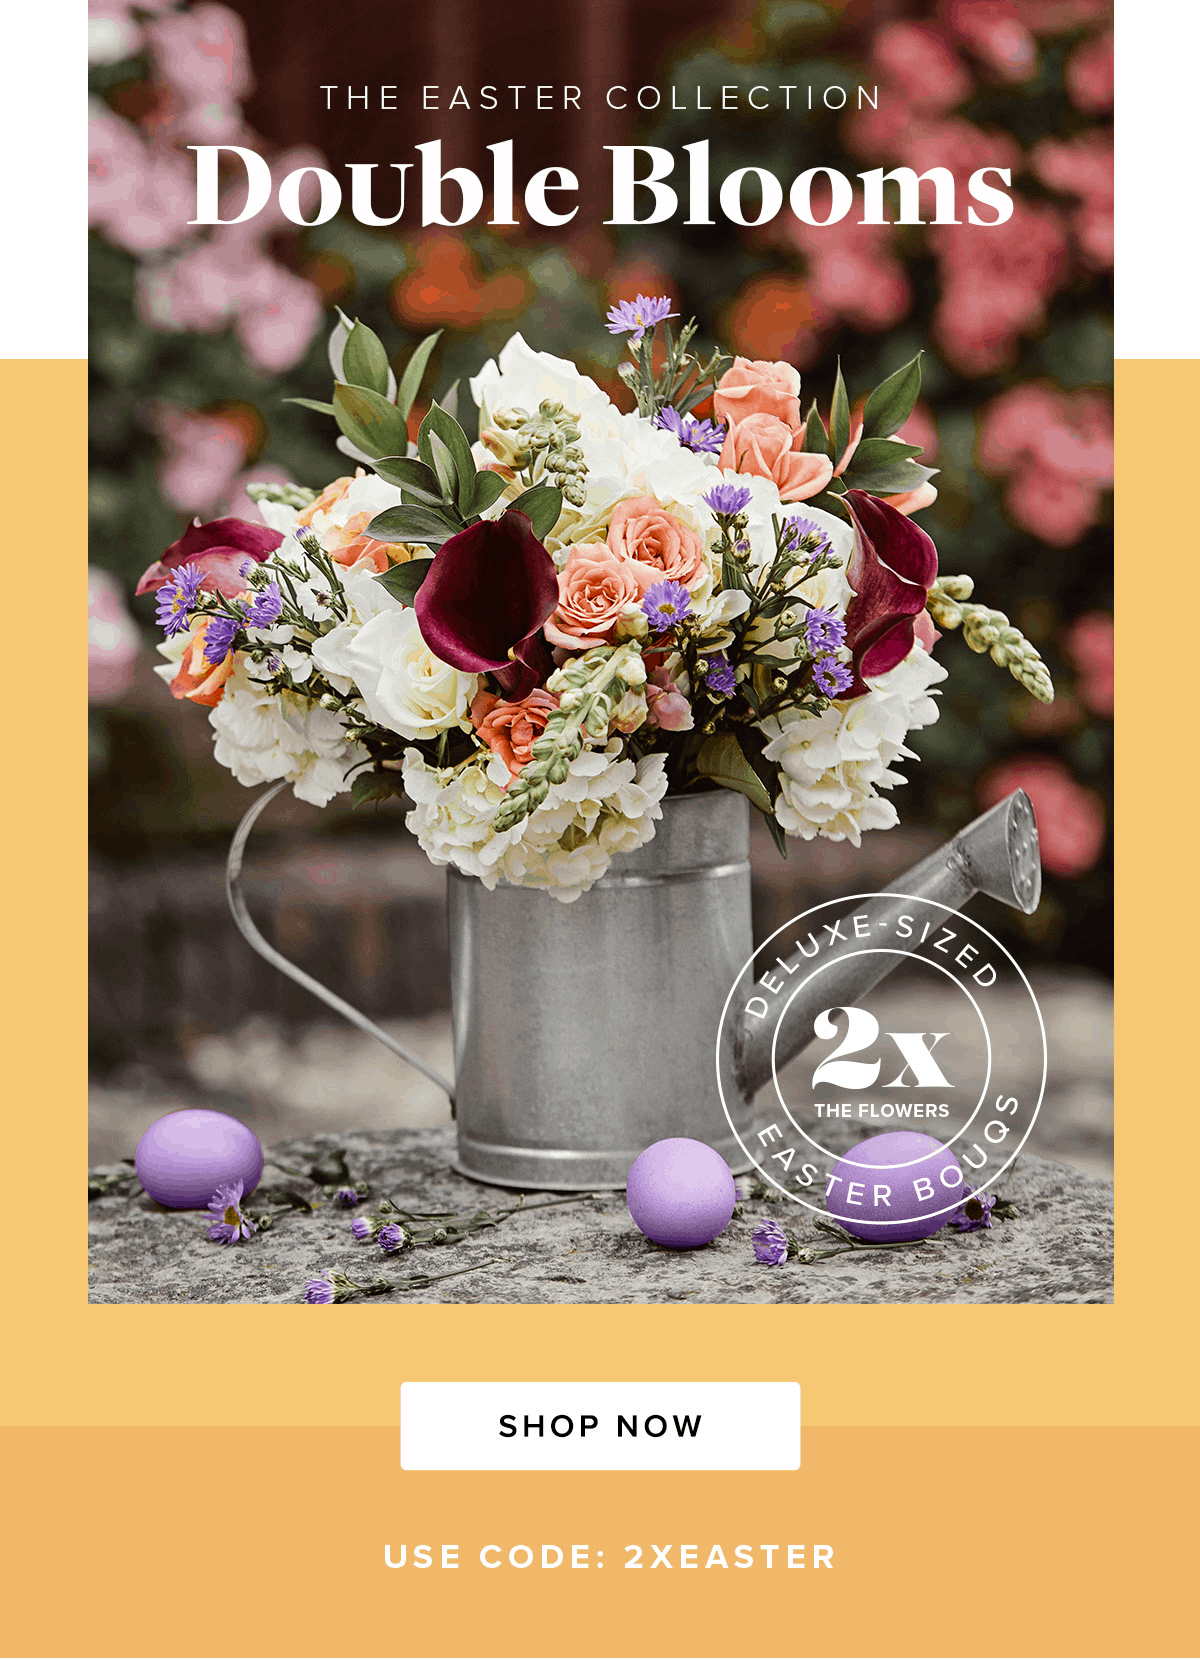 The Bouqs Easter Sale: Get Free Upgrade To Deluxe Size!